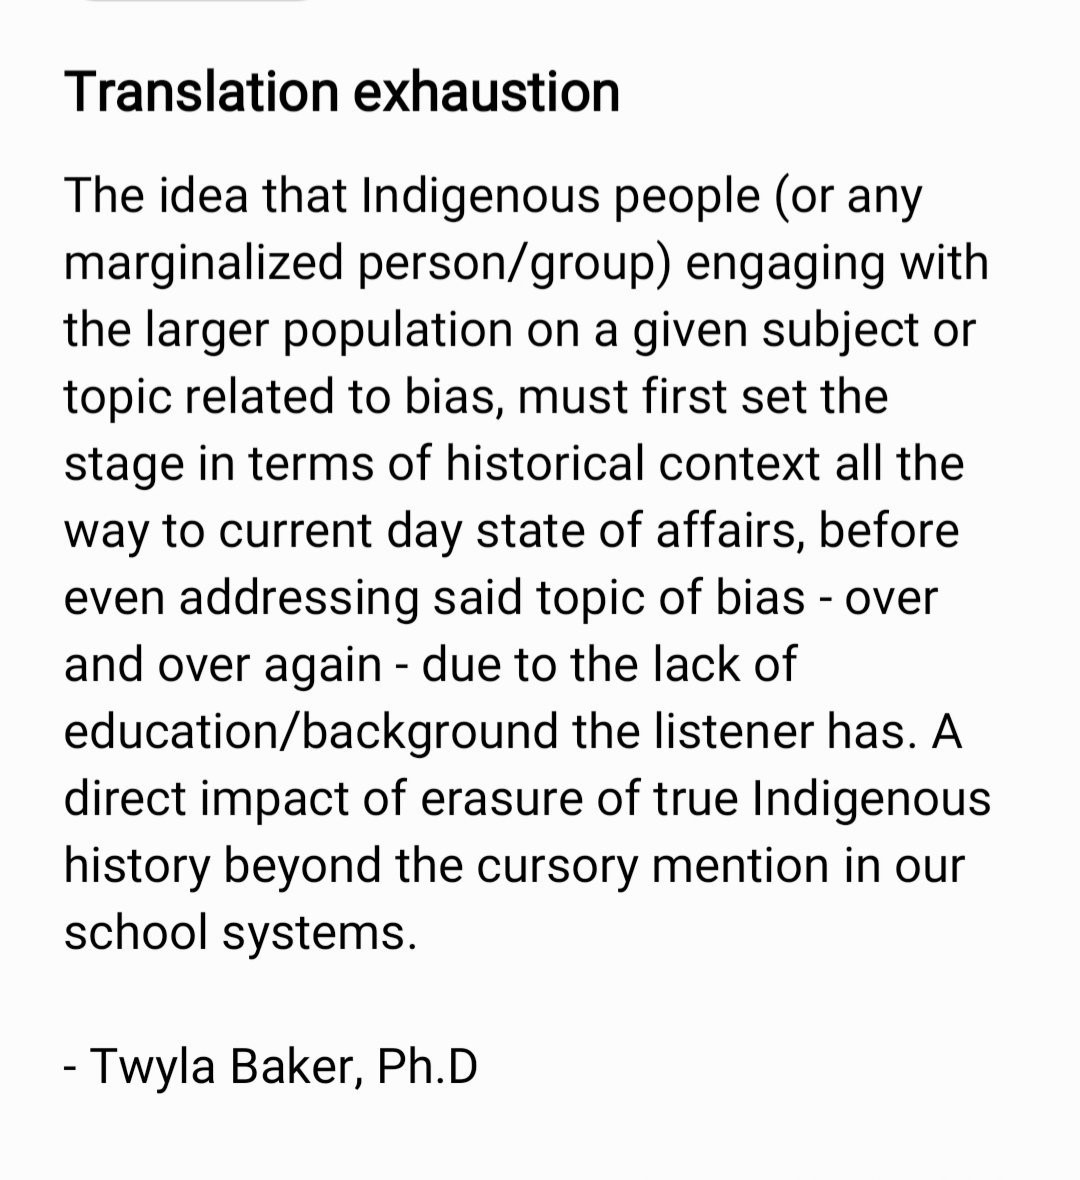 """The image contains an image with black text on a white background. It reads: """"Translation Exhaustion. The idea that Indigenous people (or any marginalized person/group) engaging with the larger population on a given subject or topic related to bias, must first set the stage in terms of historical context all the way to current day state of affairs, before even addressing said topic of bias- over and over again- due to the lack of education/background the listener has. A direct impact of erasure of true Indigenous history beyond the cursory mention in our school systems. - Twyla Baker"""""""